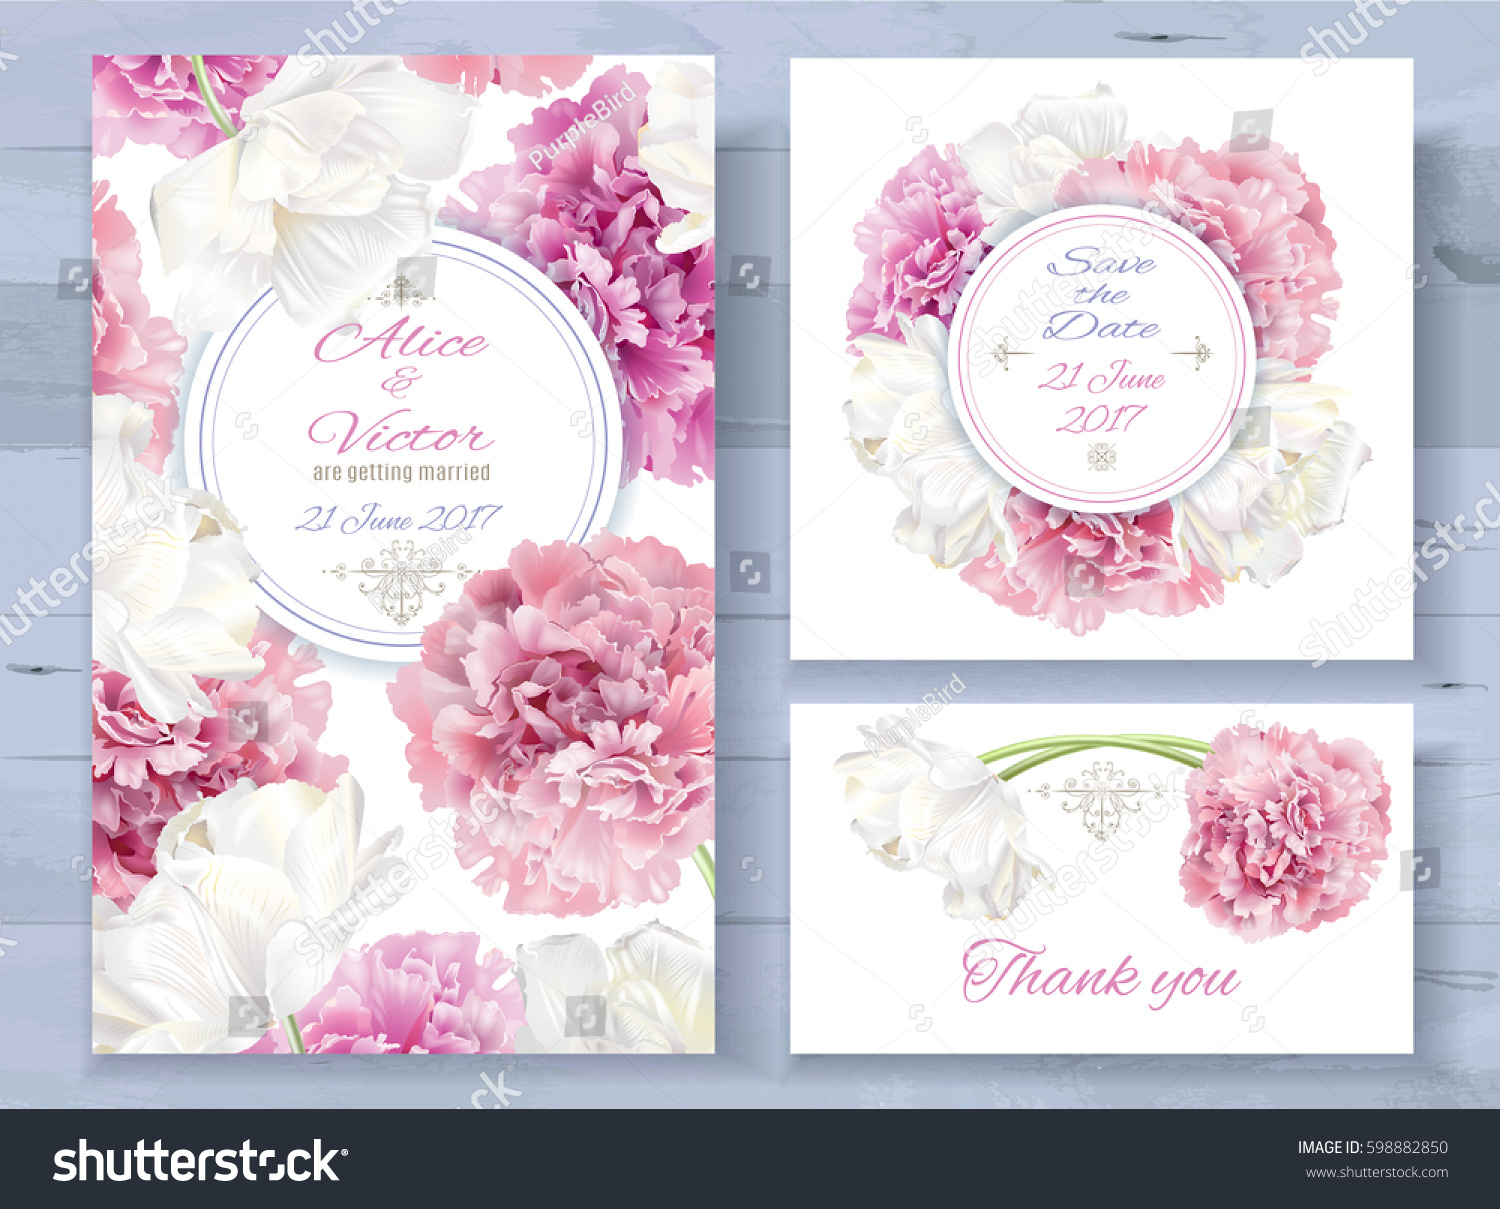 Card Stock For Invitations for luxury invitations template